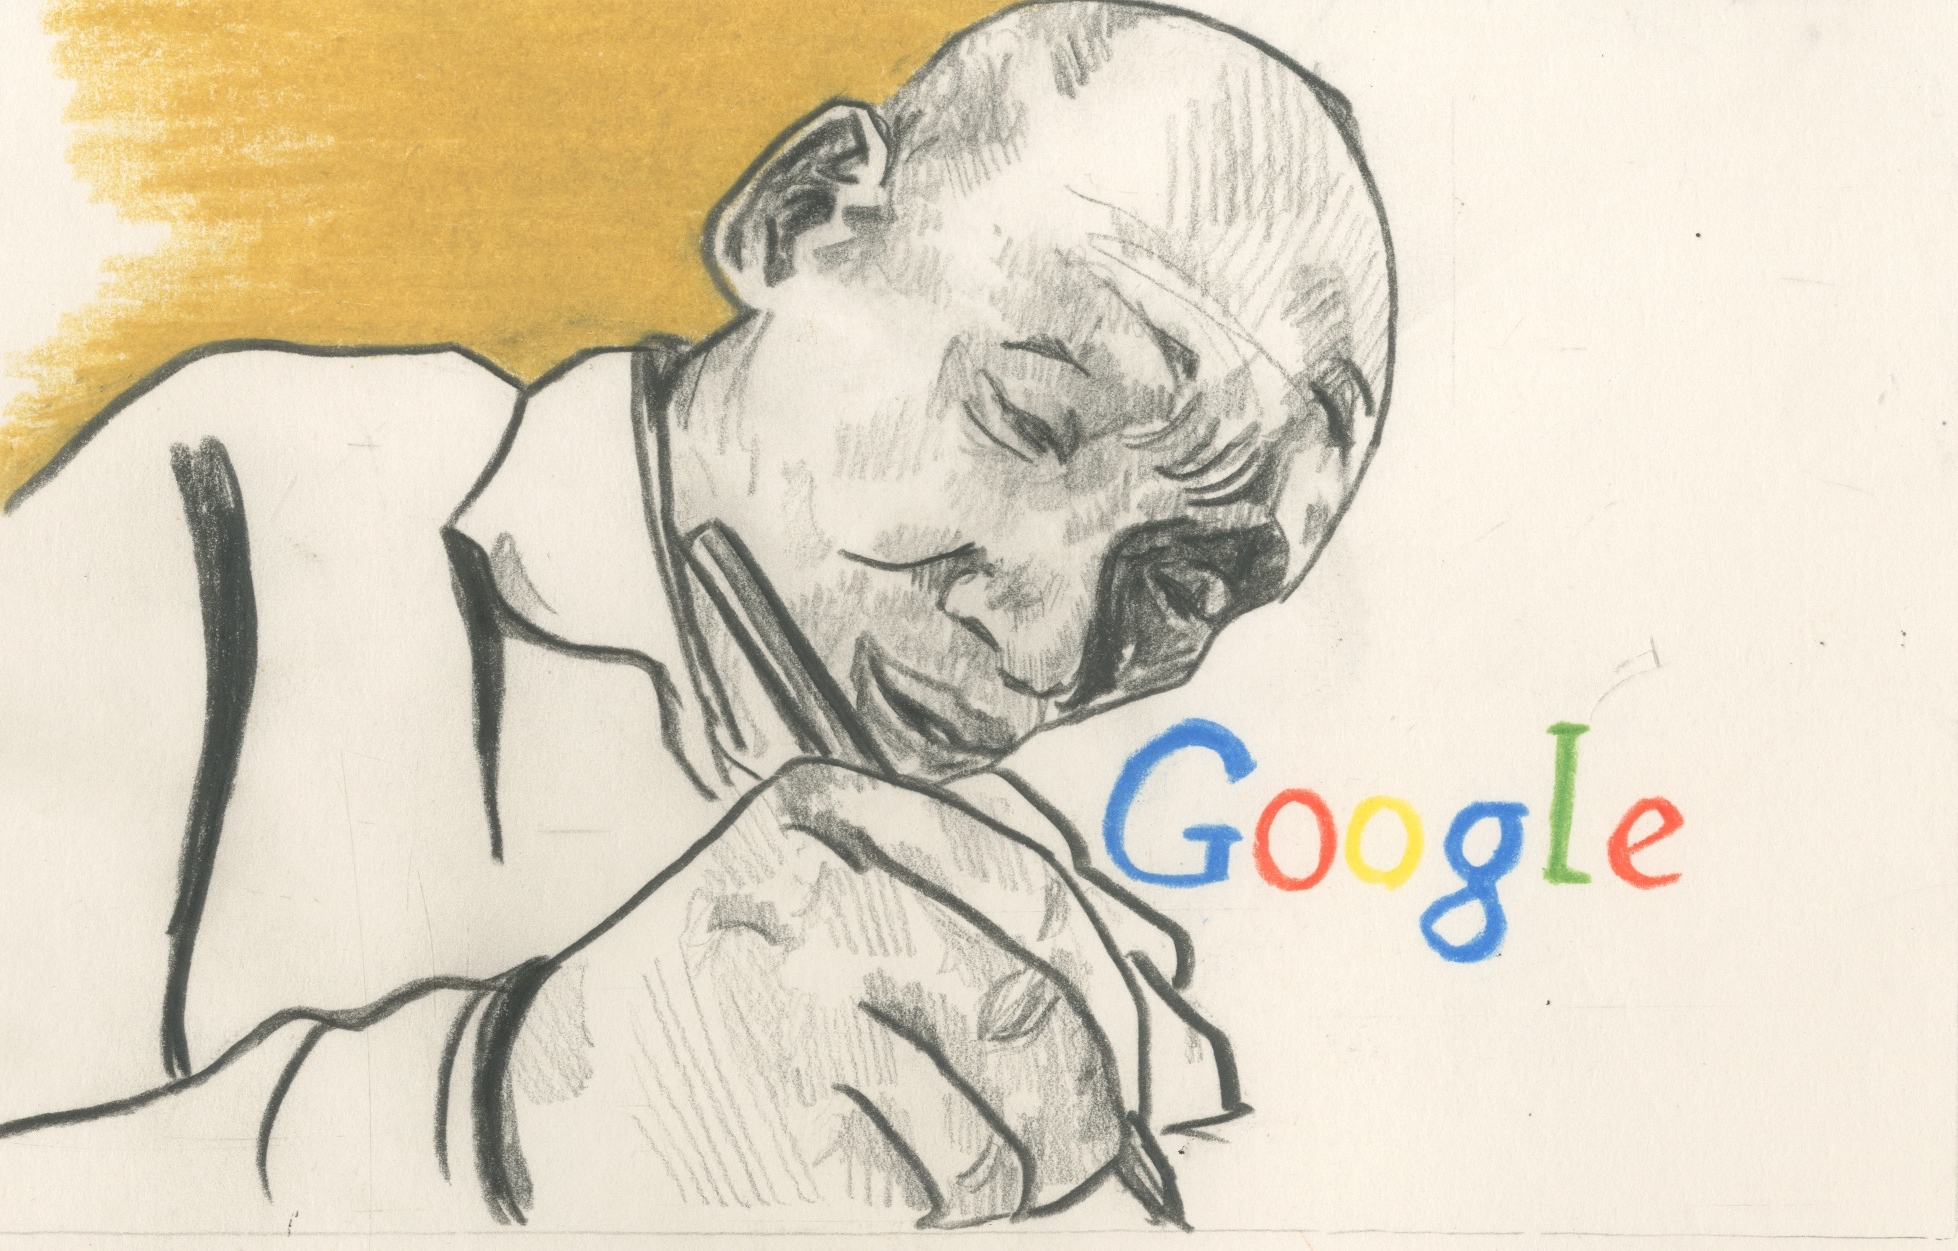 14/01/15 Today is the 11th anniversary since Kimani Maruge went to school for the first time, aged 84. Google honoured him with a 'doodle' in Kenya